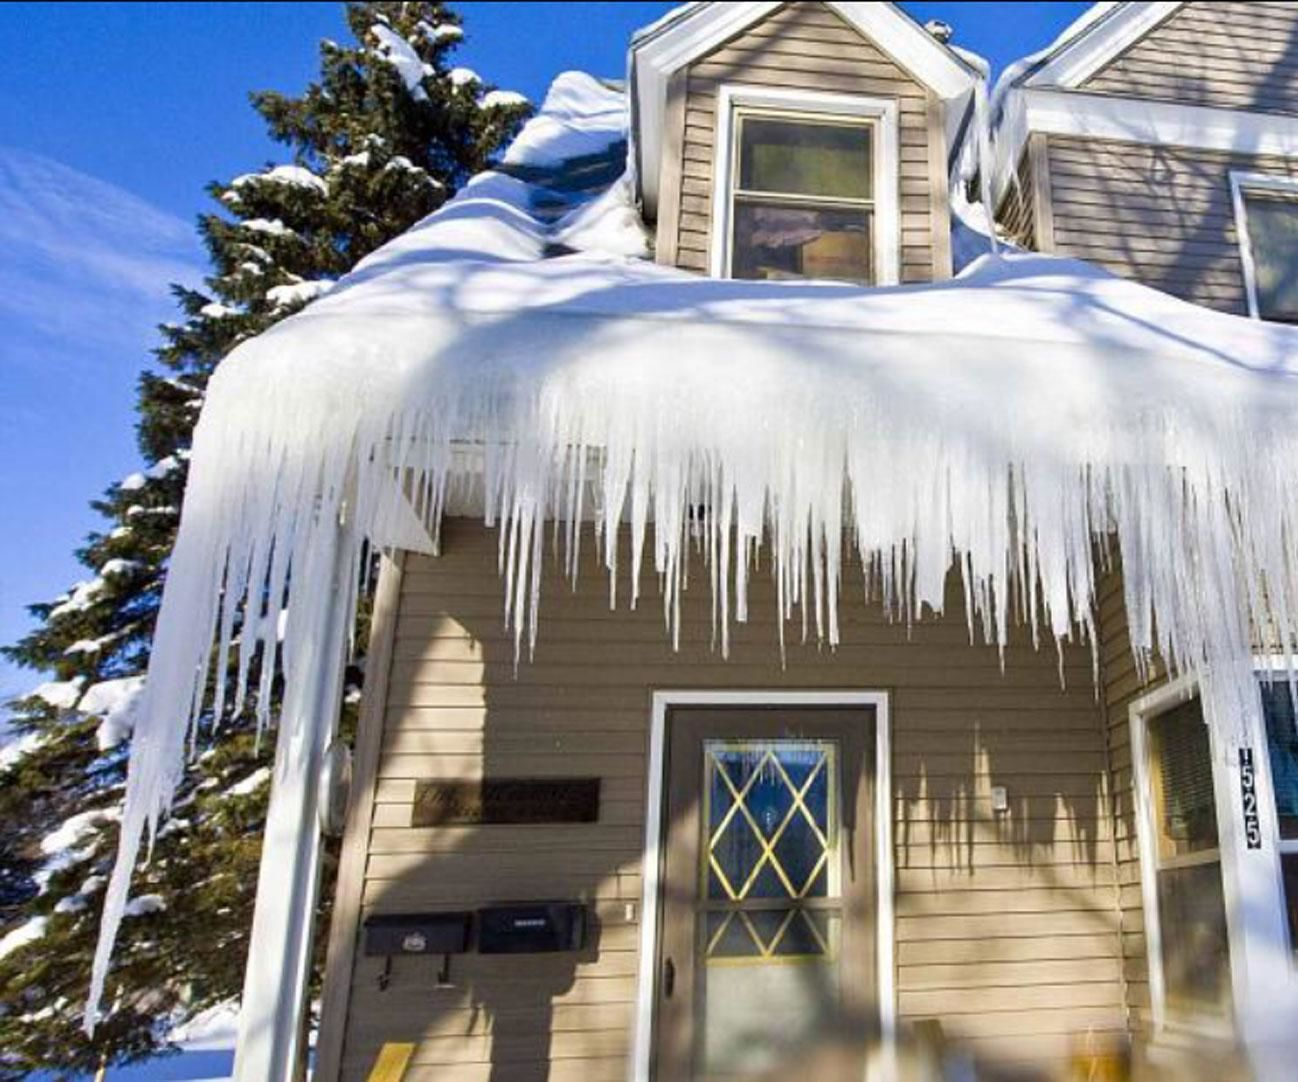 See How To Remove Ice Dams At Your Home For Good Use These Tips For Preventing Ice Dams From Every Coming Back At Any Real Estate Real Estate Articles